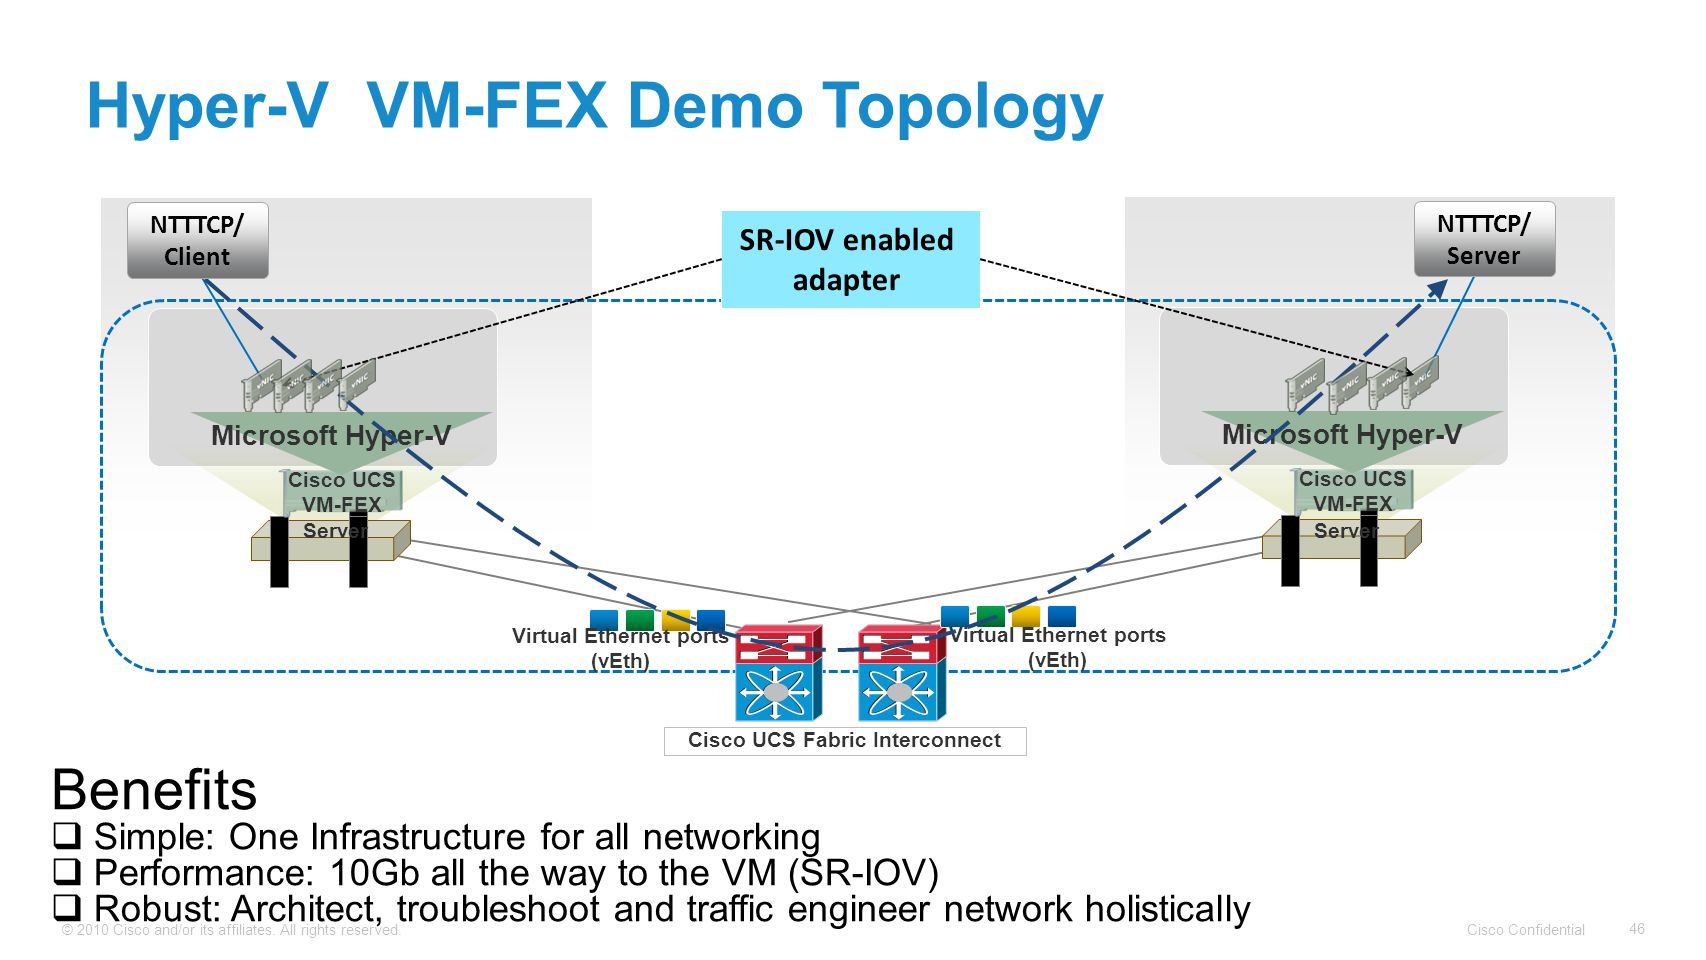 Cisco Confidential © 2010 Cisco and/or its affiliates. All rights reserved. 46 Hyper-V VM-FEX Demo Topology Server Cisco UCS VM-FEX Microsoft Hyper-V